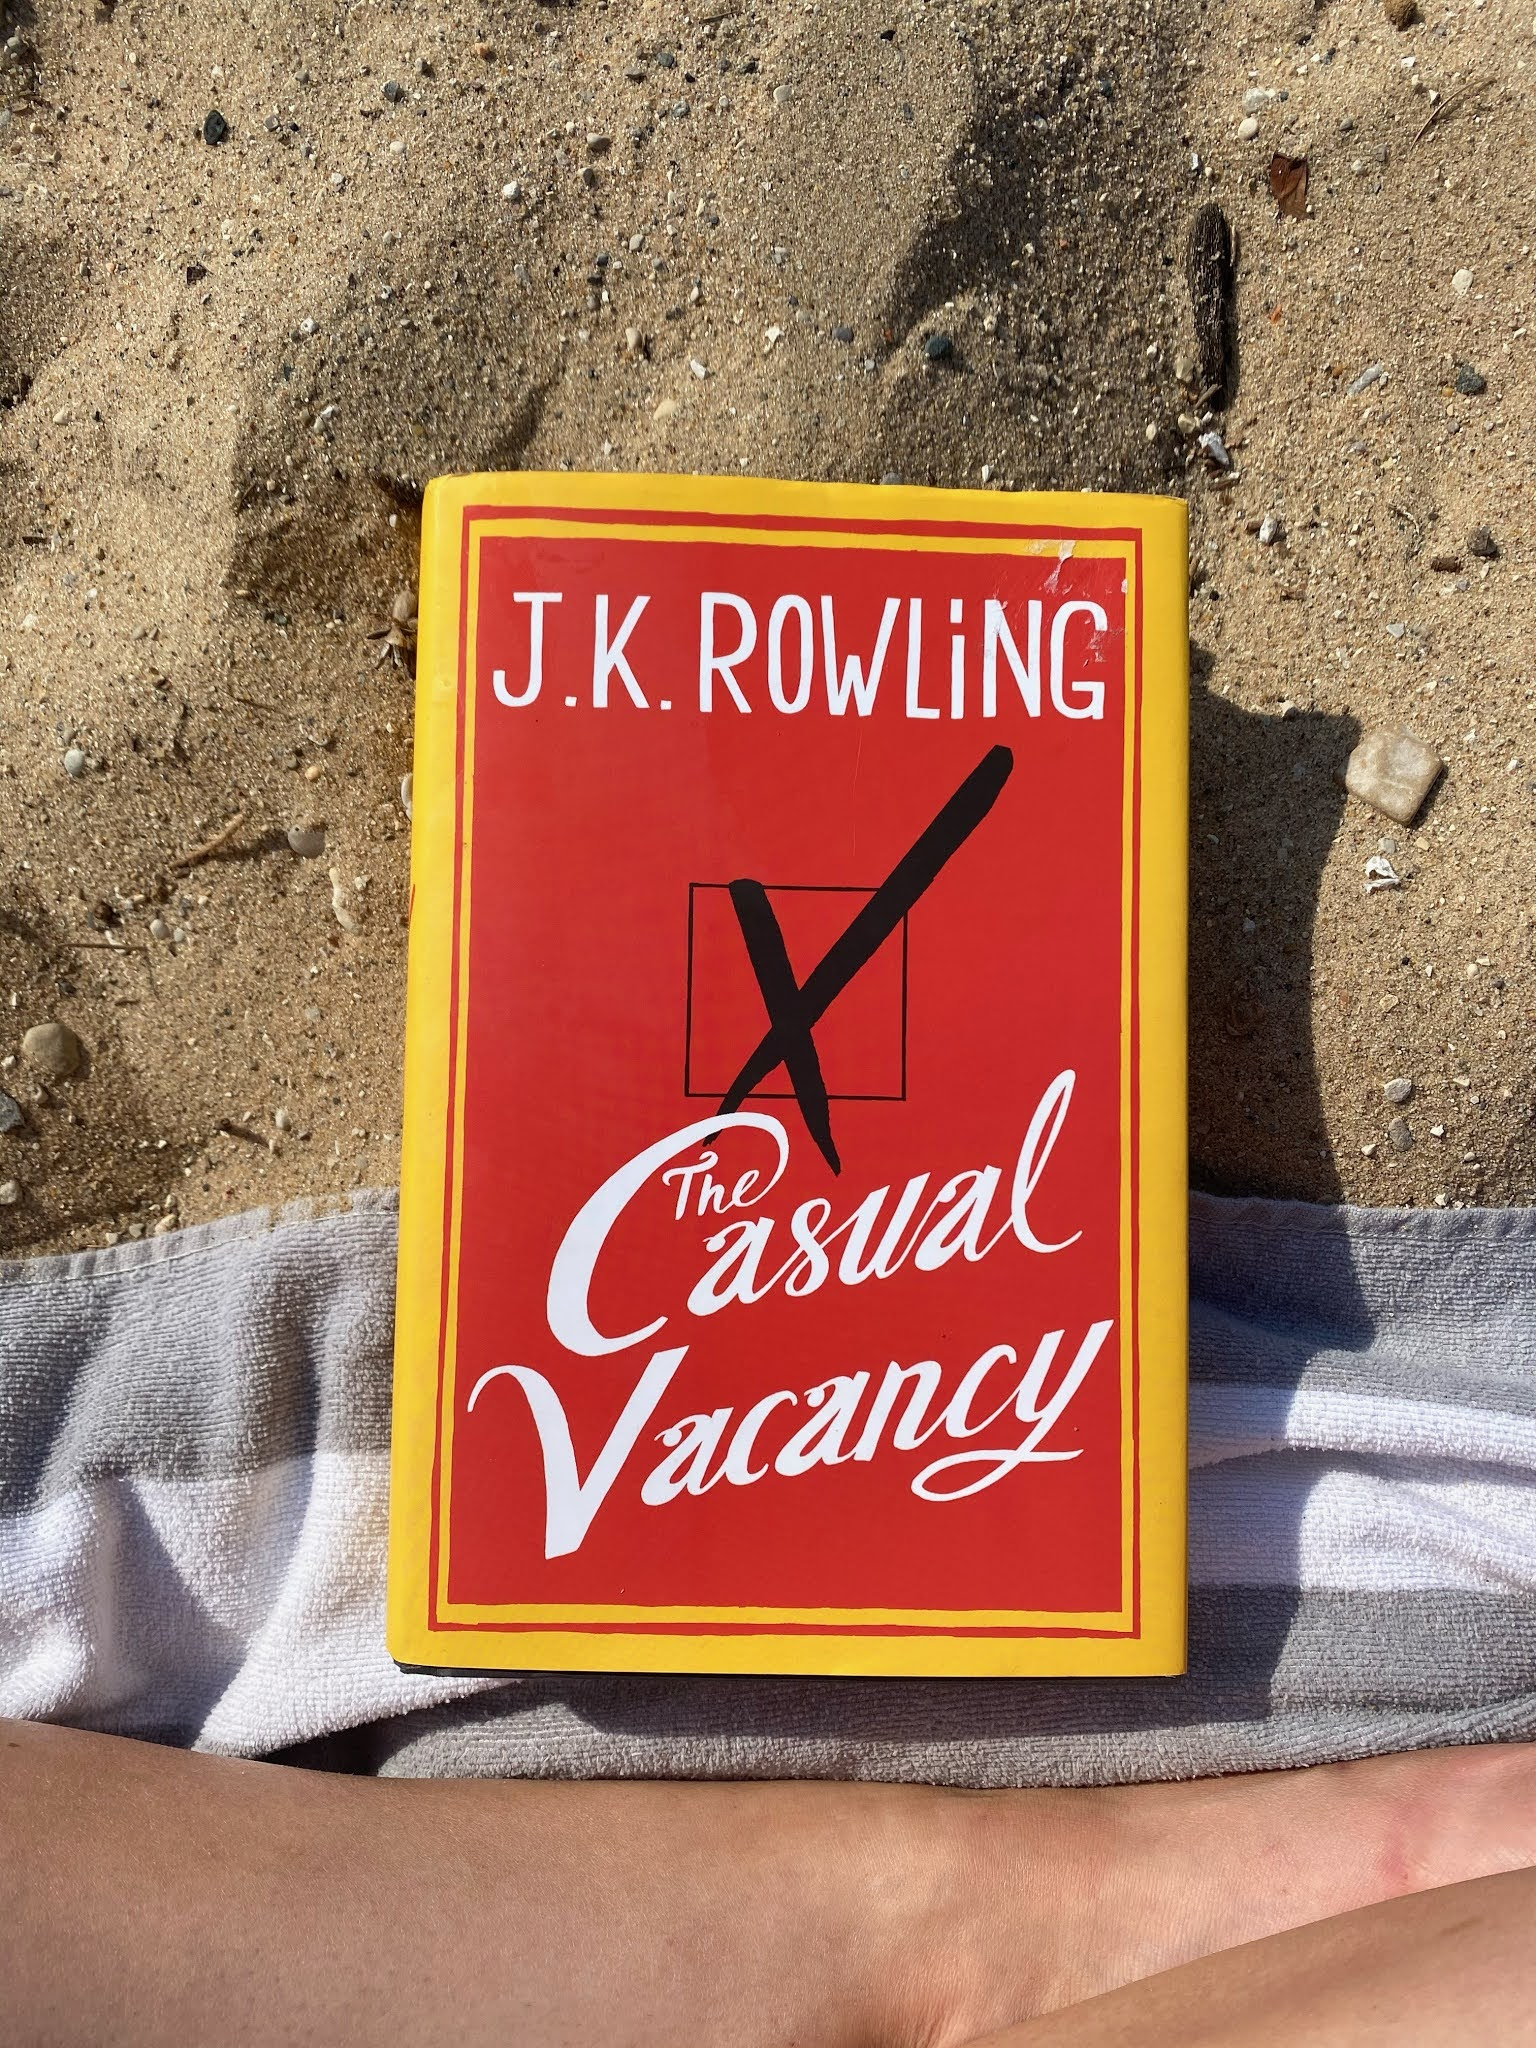 Reading The Casual Vacancy by JK Rowling | www.biblio-style.com